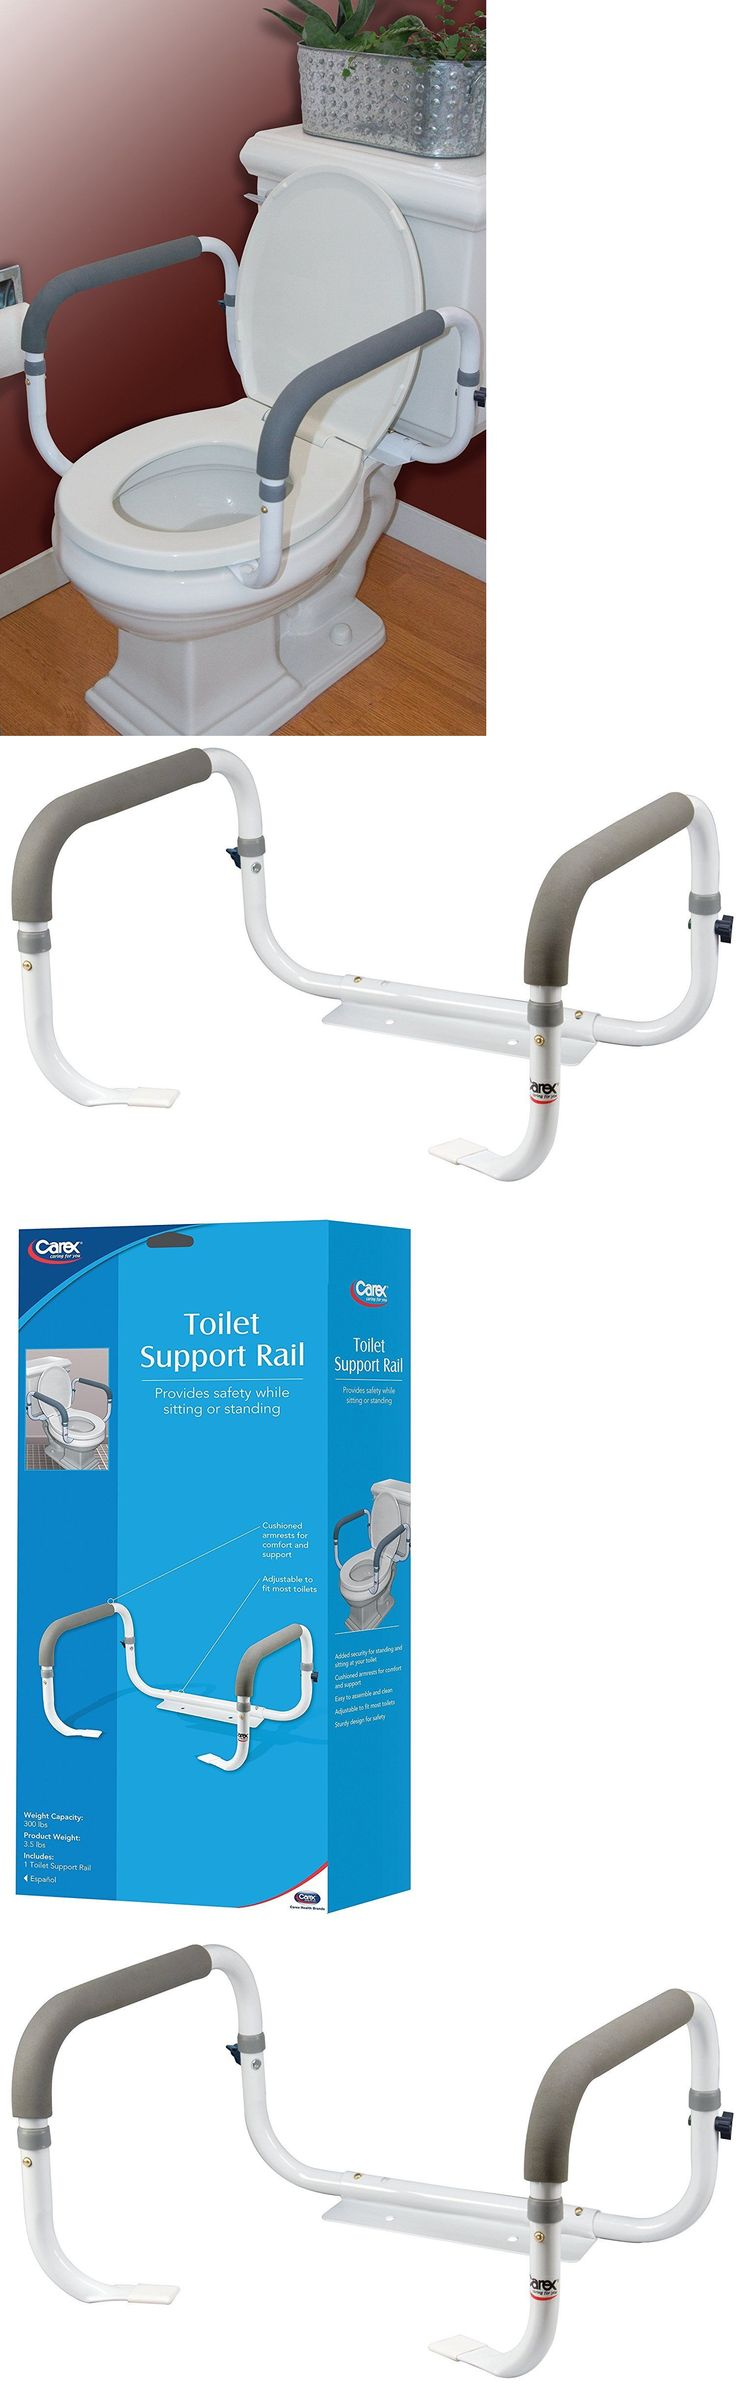 Handles and Rails: Toilet Safety Frame Rail Bathroom Grab Bars Seat Medical Support Handicap Arms BUY IT NOW ONLY: $32.99